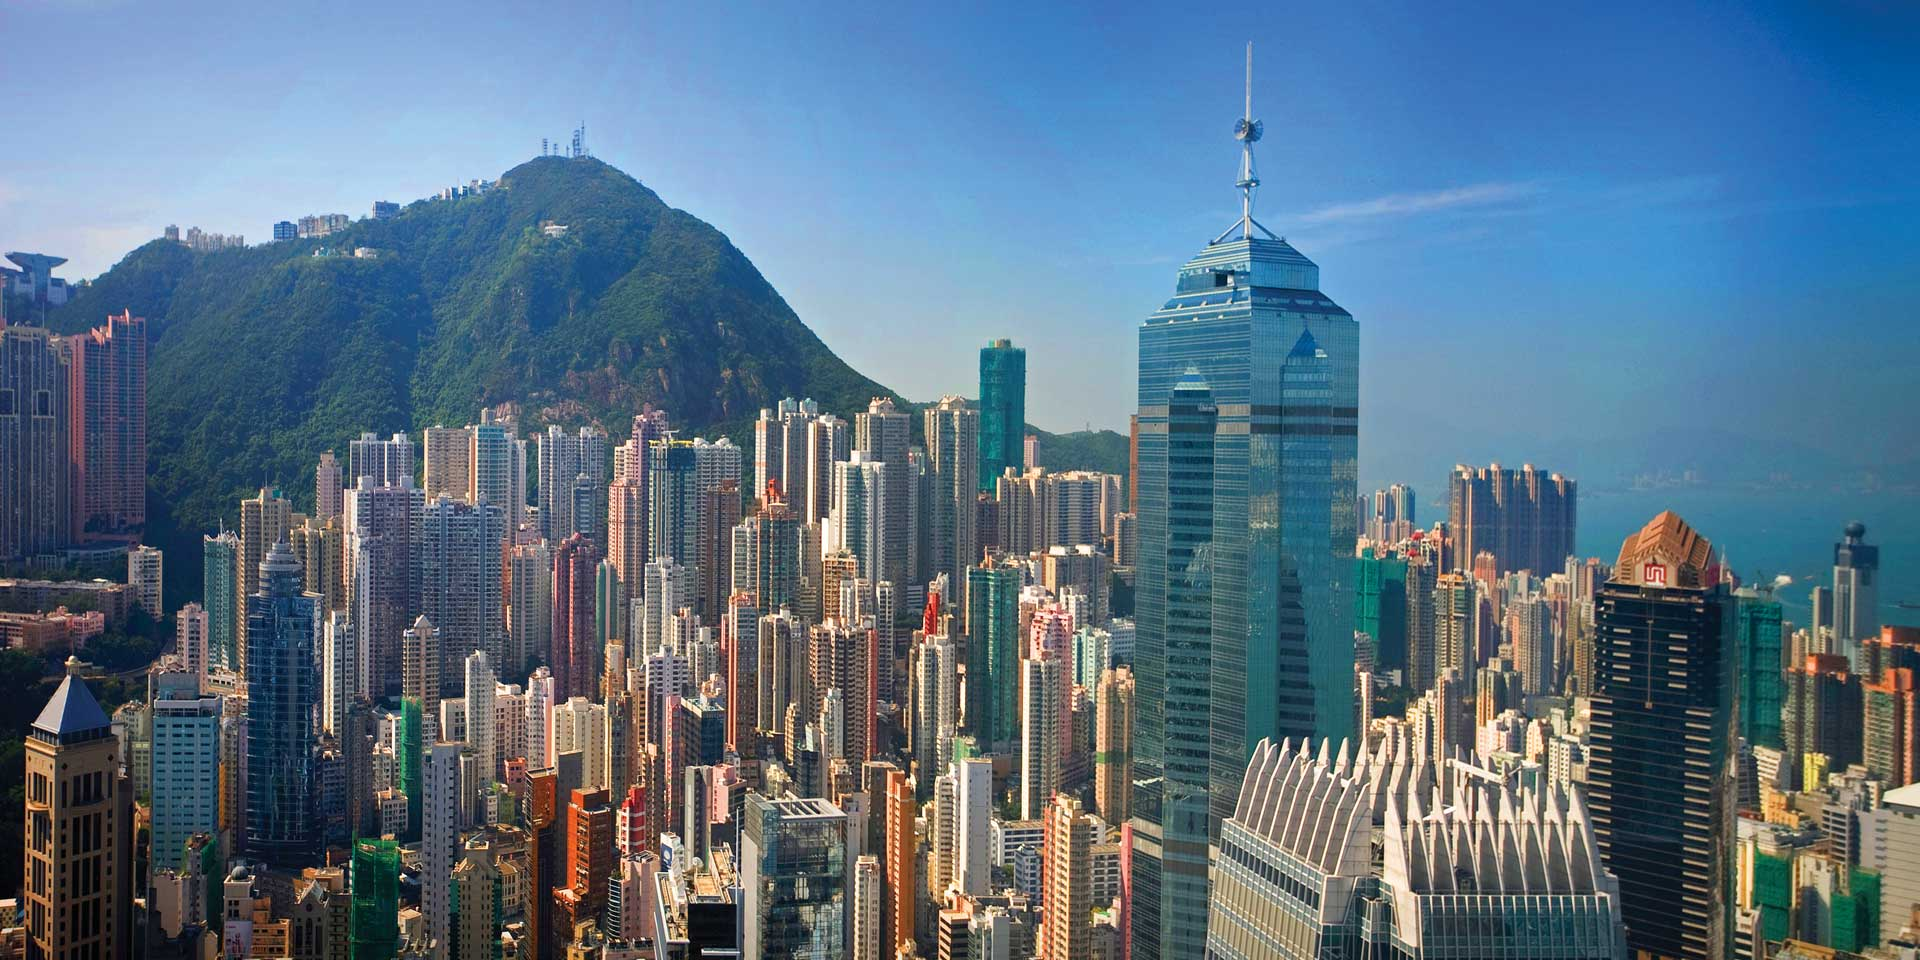 Hong Kong Hong Kong  city photos gallery : Hong Kong | White & Case LLP International Law Firm, Global Law ...